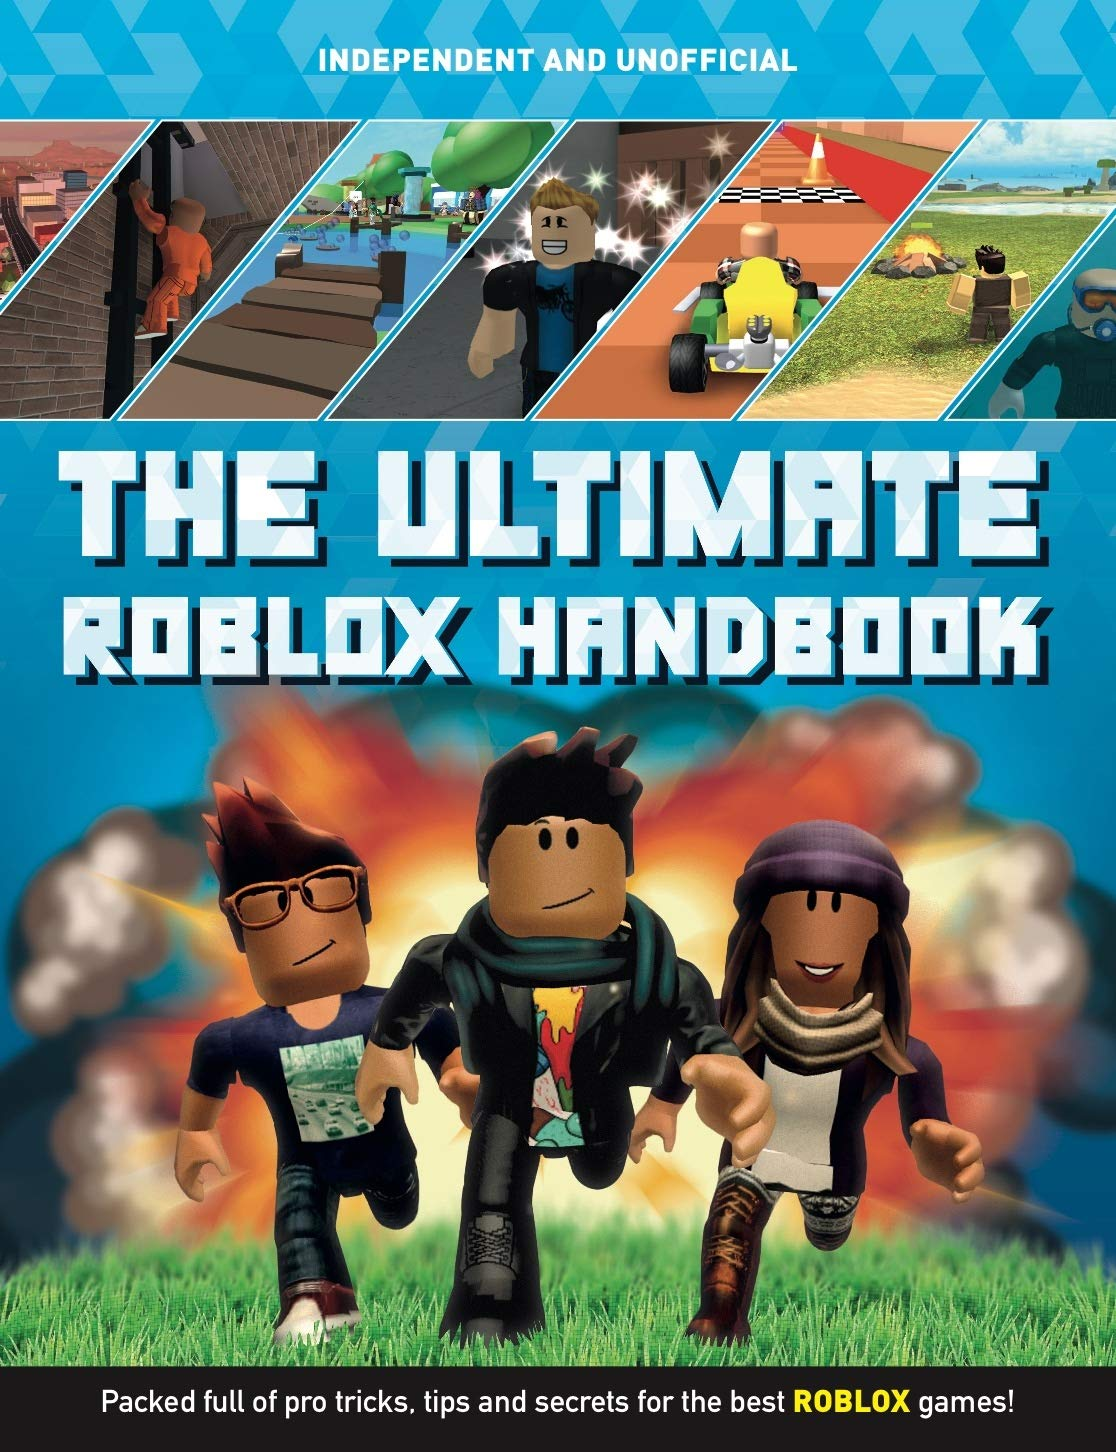 The Ultimate Roblox Handbook Packed Full Of Pro Tricks Tips And